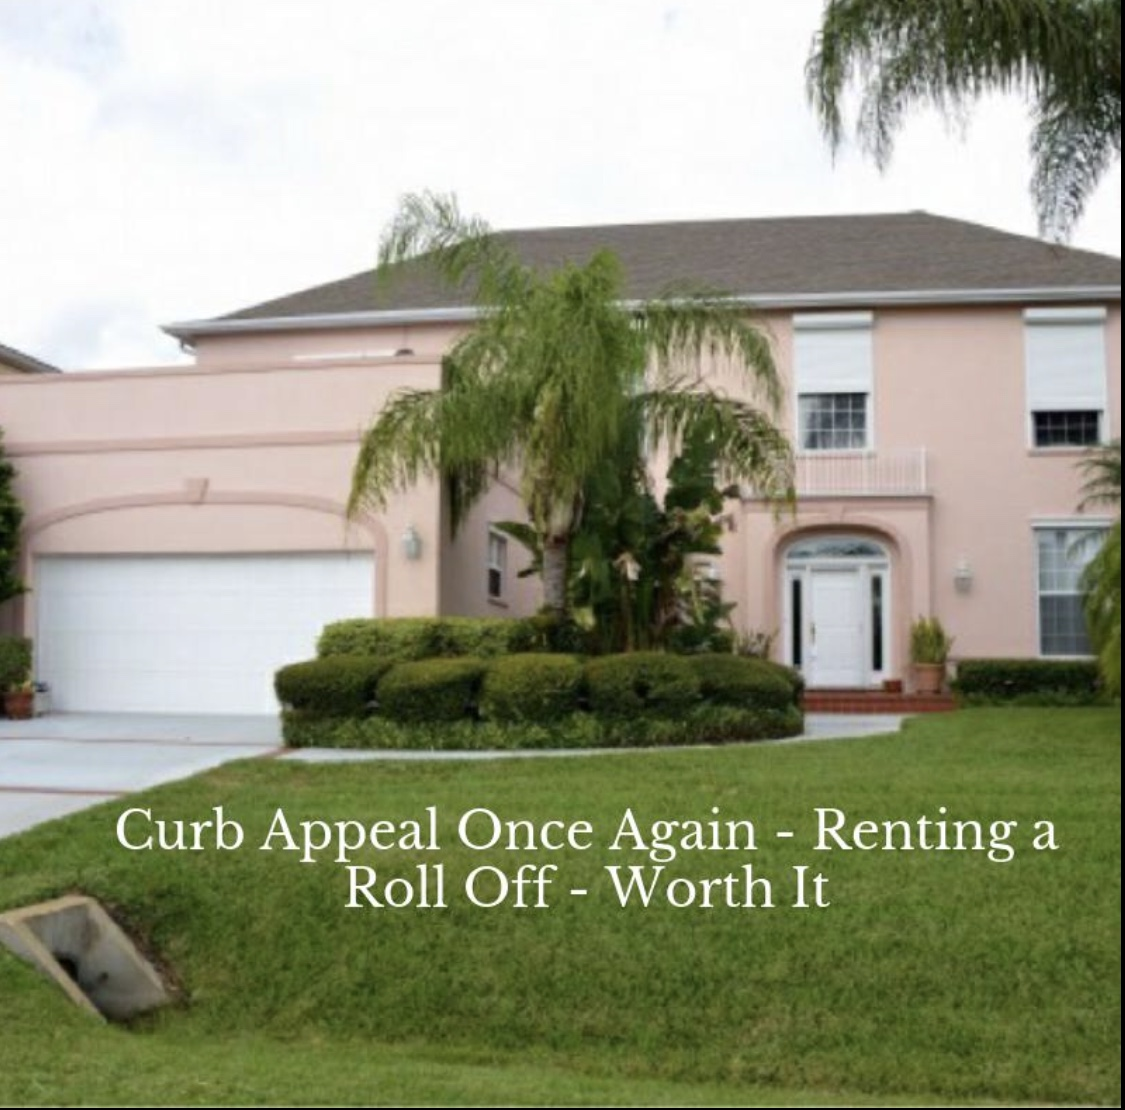 curb appeal after dumpster rental Brevard county fl